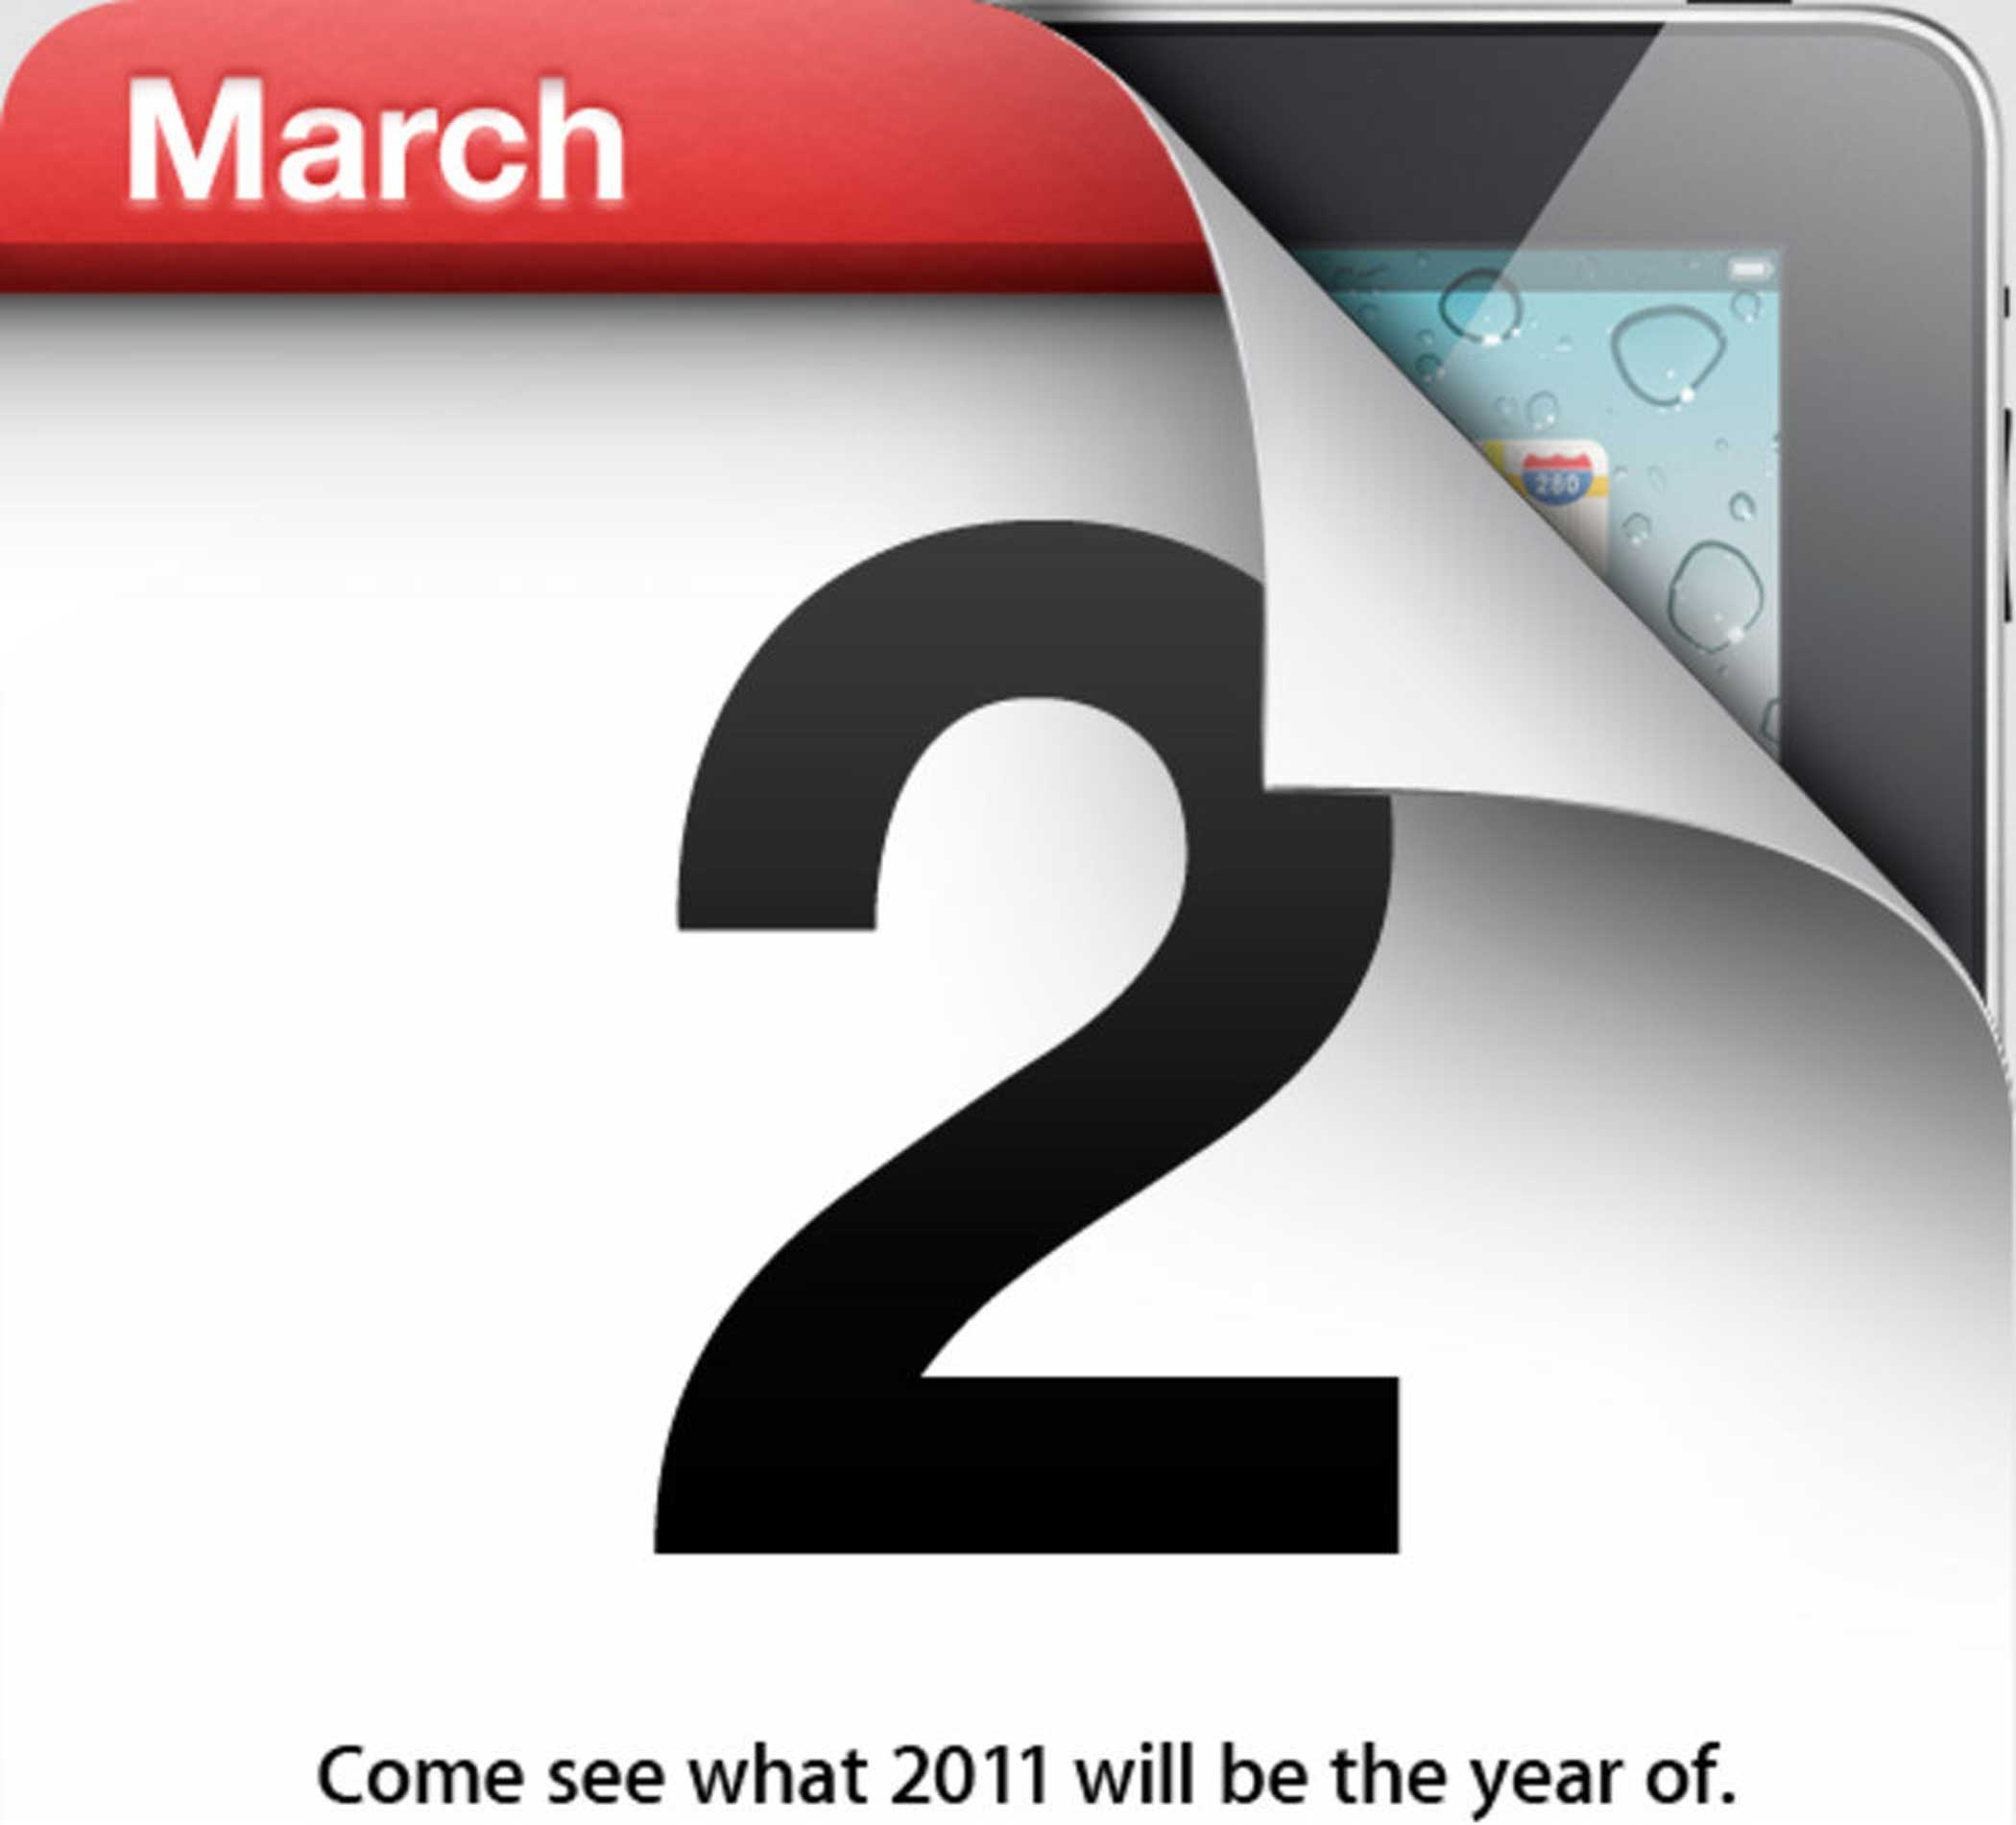 <strong>iPad 2</strong>, March 2011